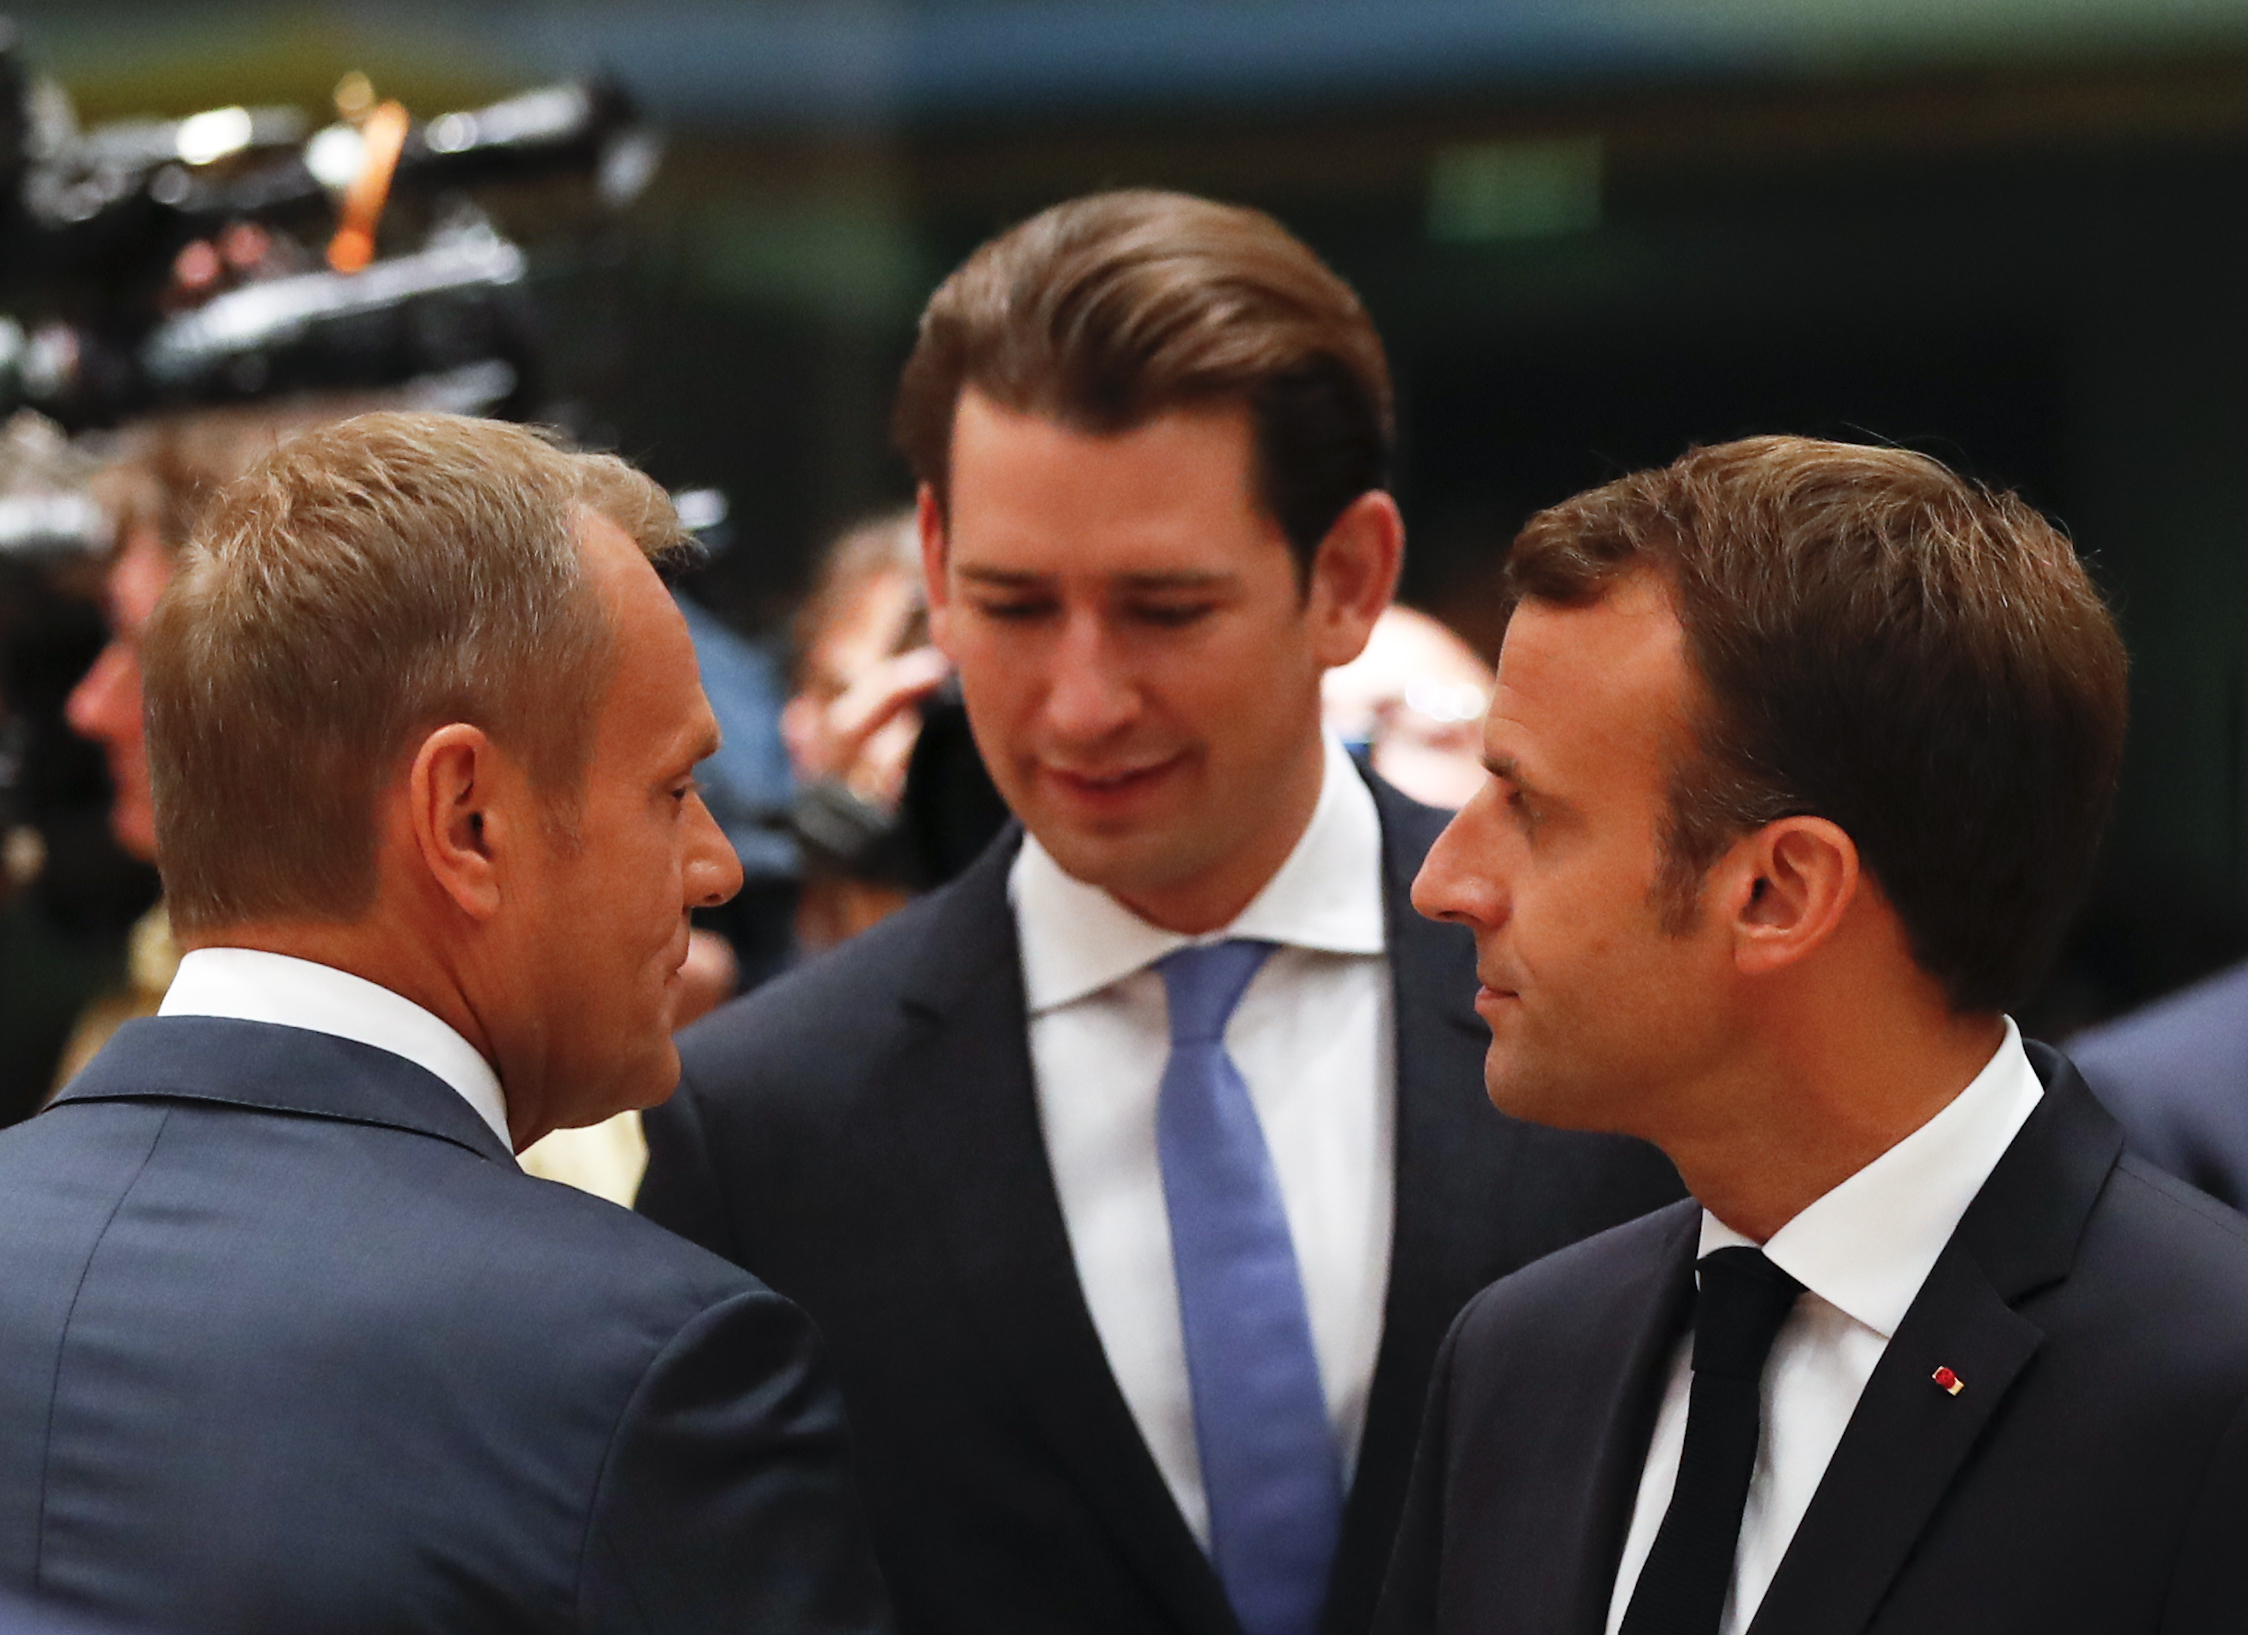 European Council President Donald Tusk, left, speaks with Austrian Chancellor Sebastian Kurz, center, and French President Emmanuel Macron during a round table meeting at an EU summit in Brussels,  Oct. 17, 2018.